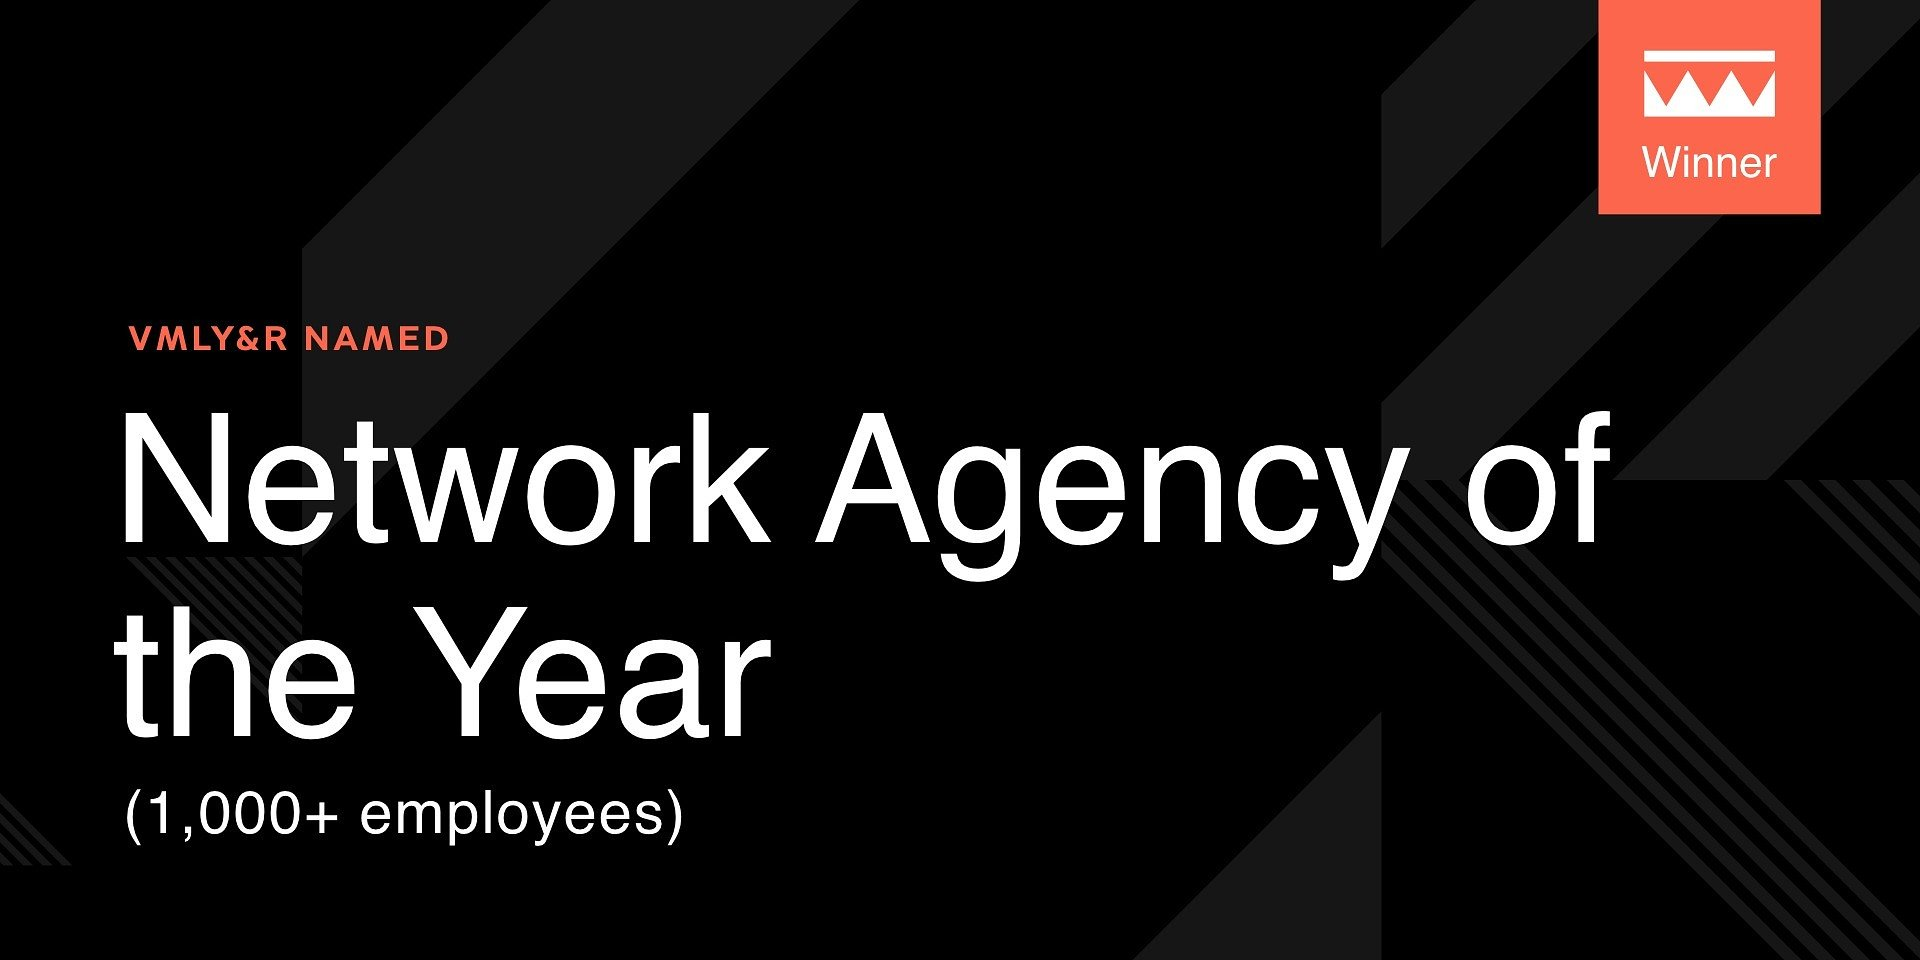 The Drum: VMLY&R z tytułem Network Agency of the Year